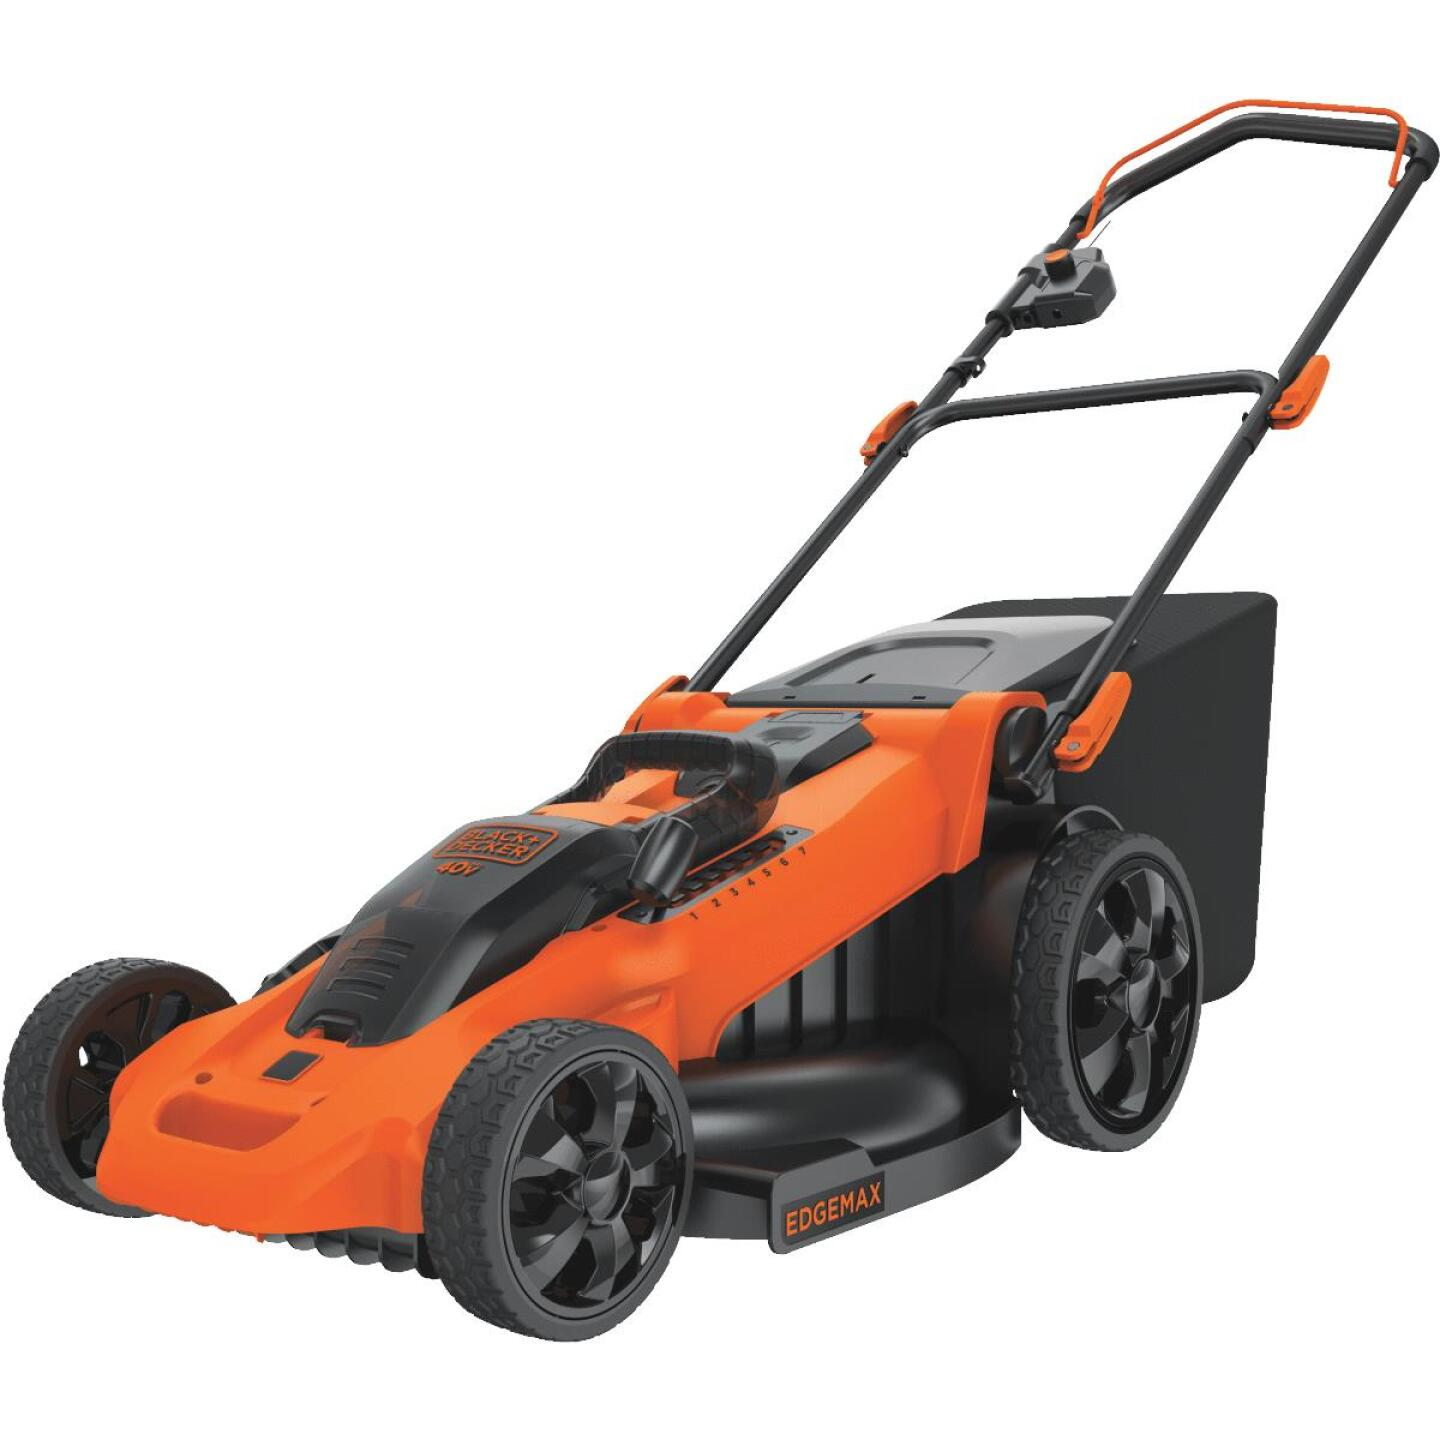 Black & Decker 20 In. 40V MAX Lithium Ion Push Cordless Lawn Mower Image 5